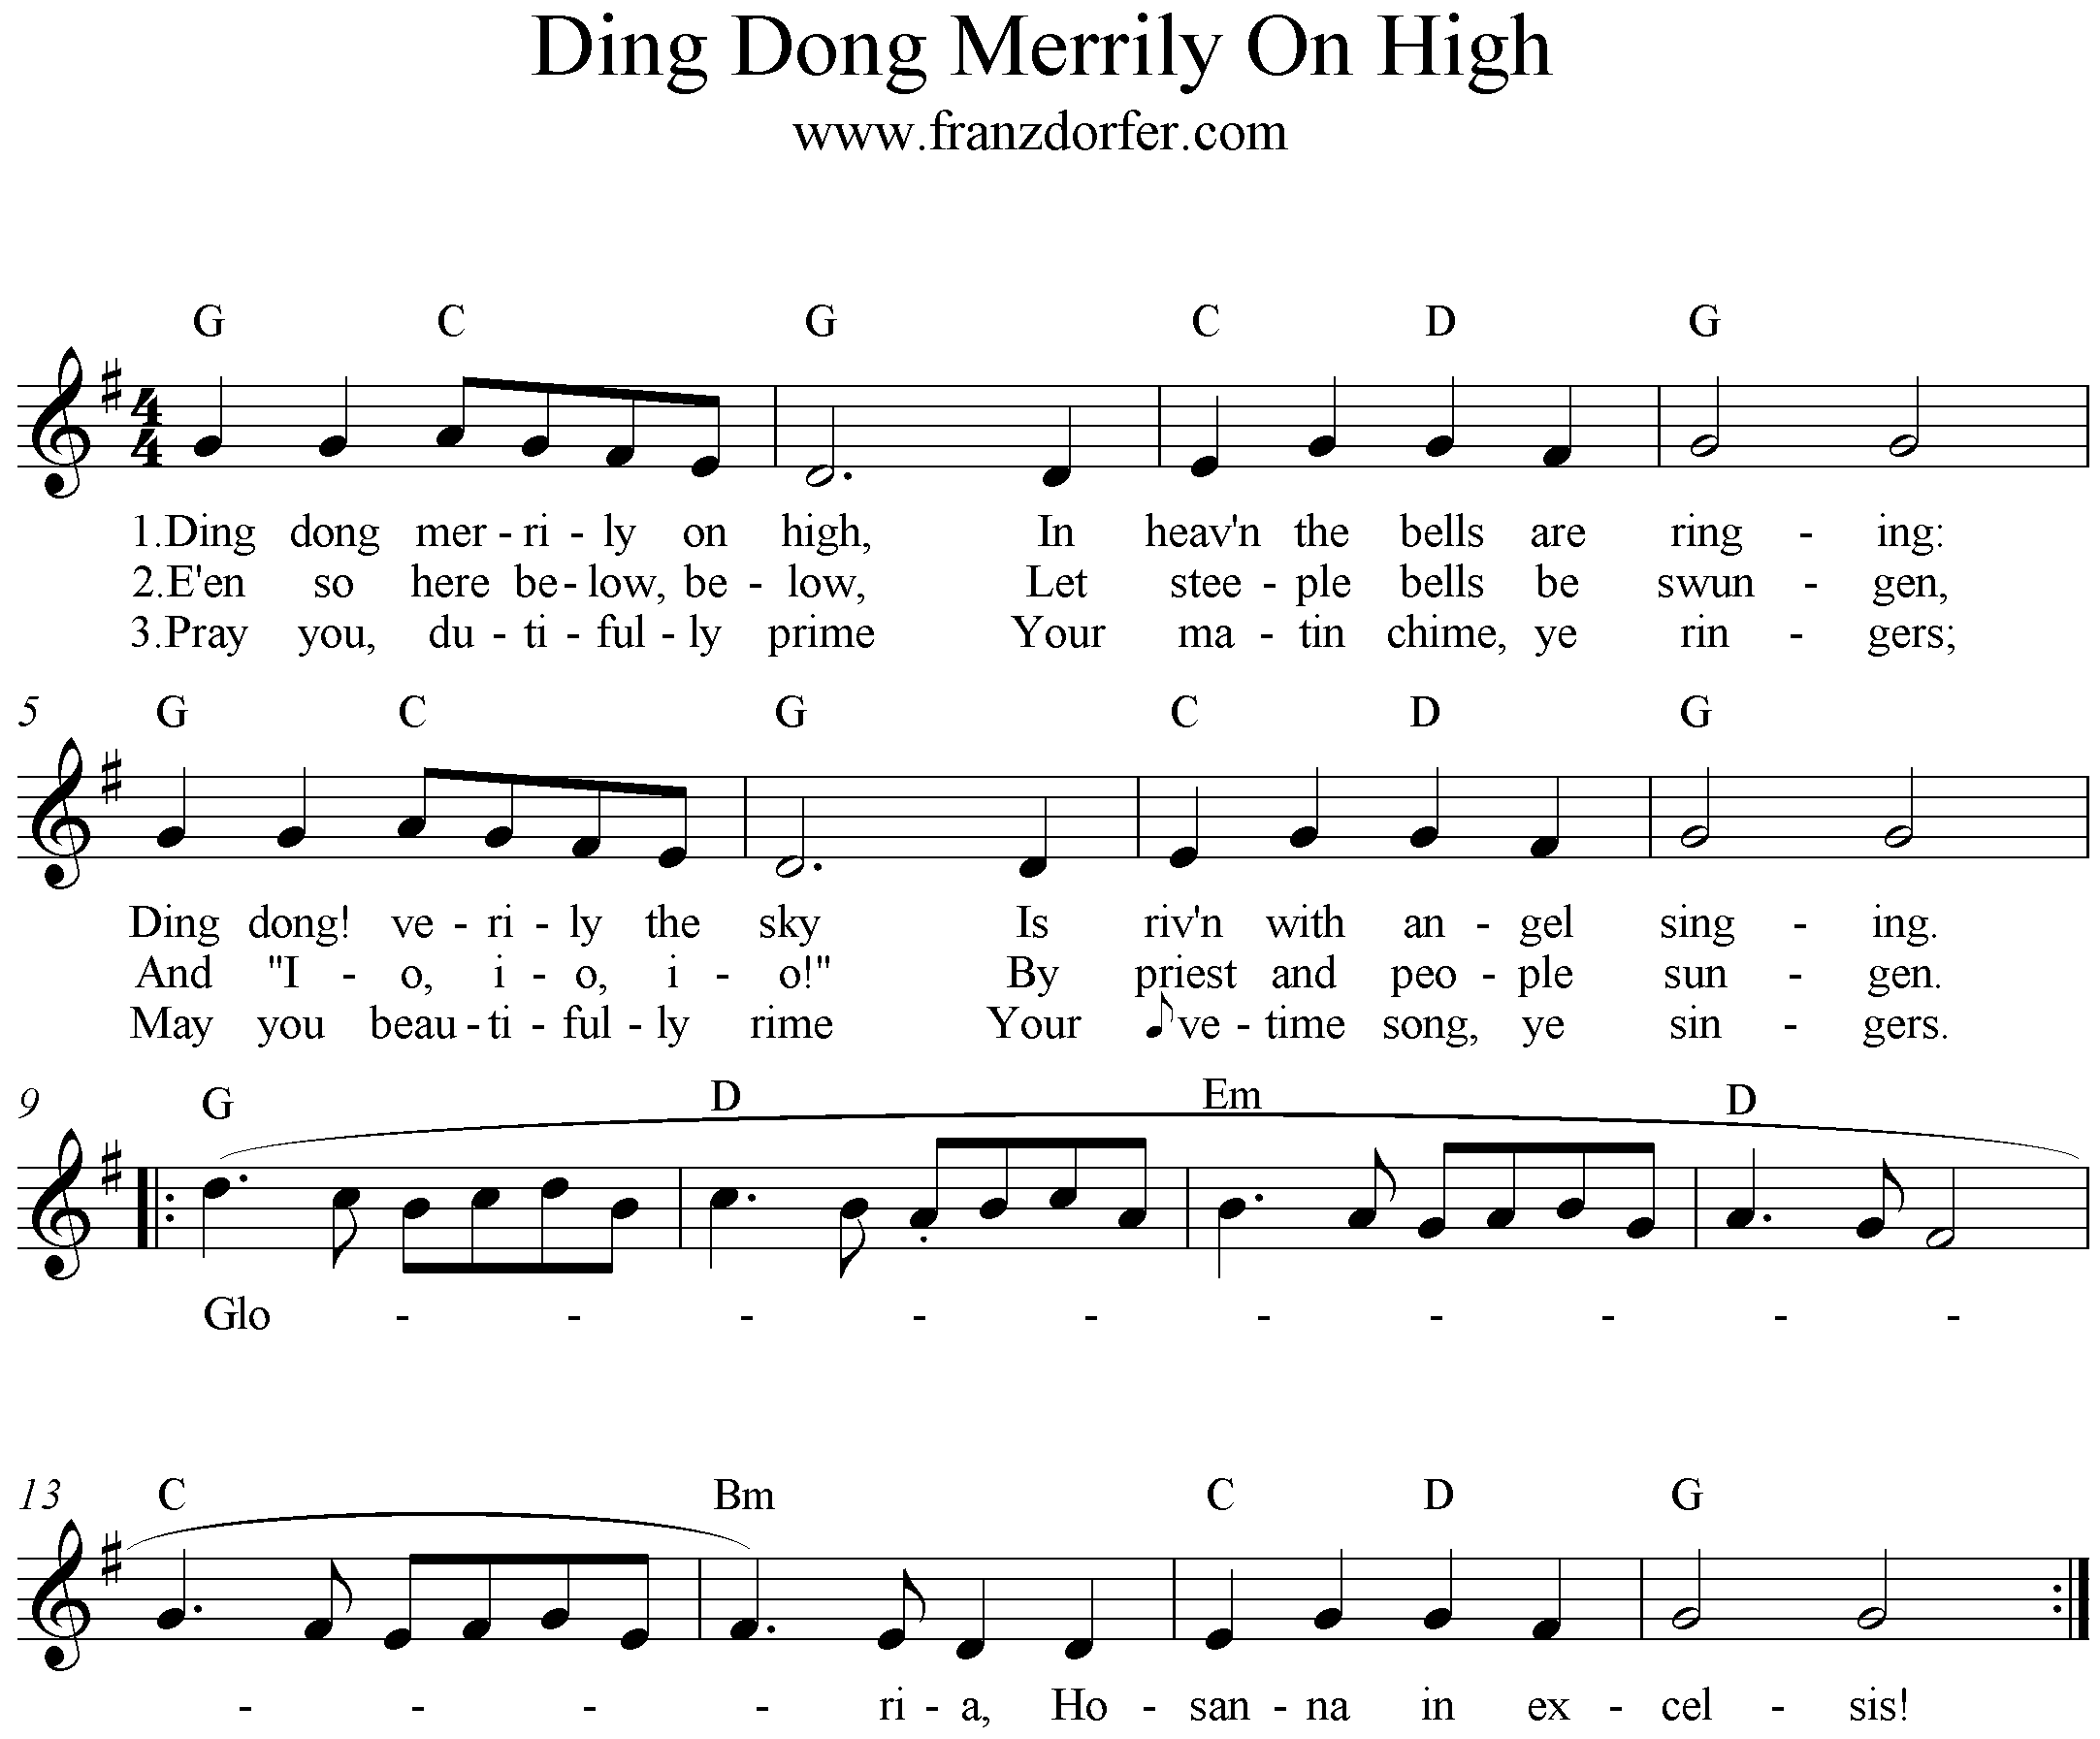 boten Ding Dong Merrily On High